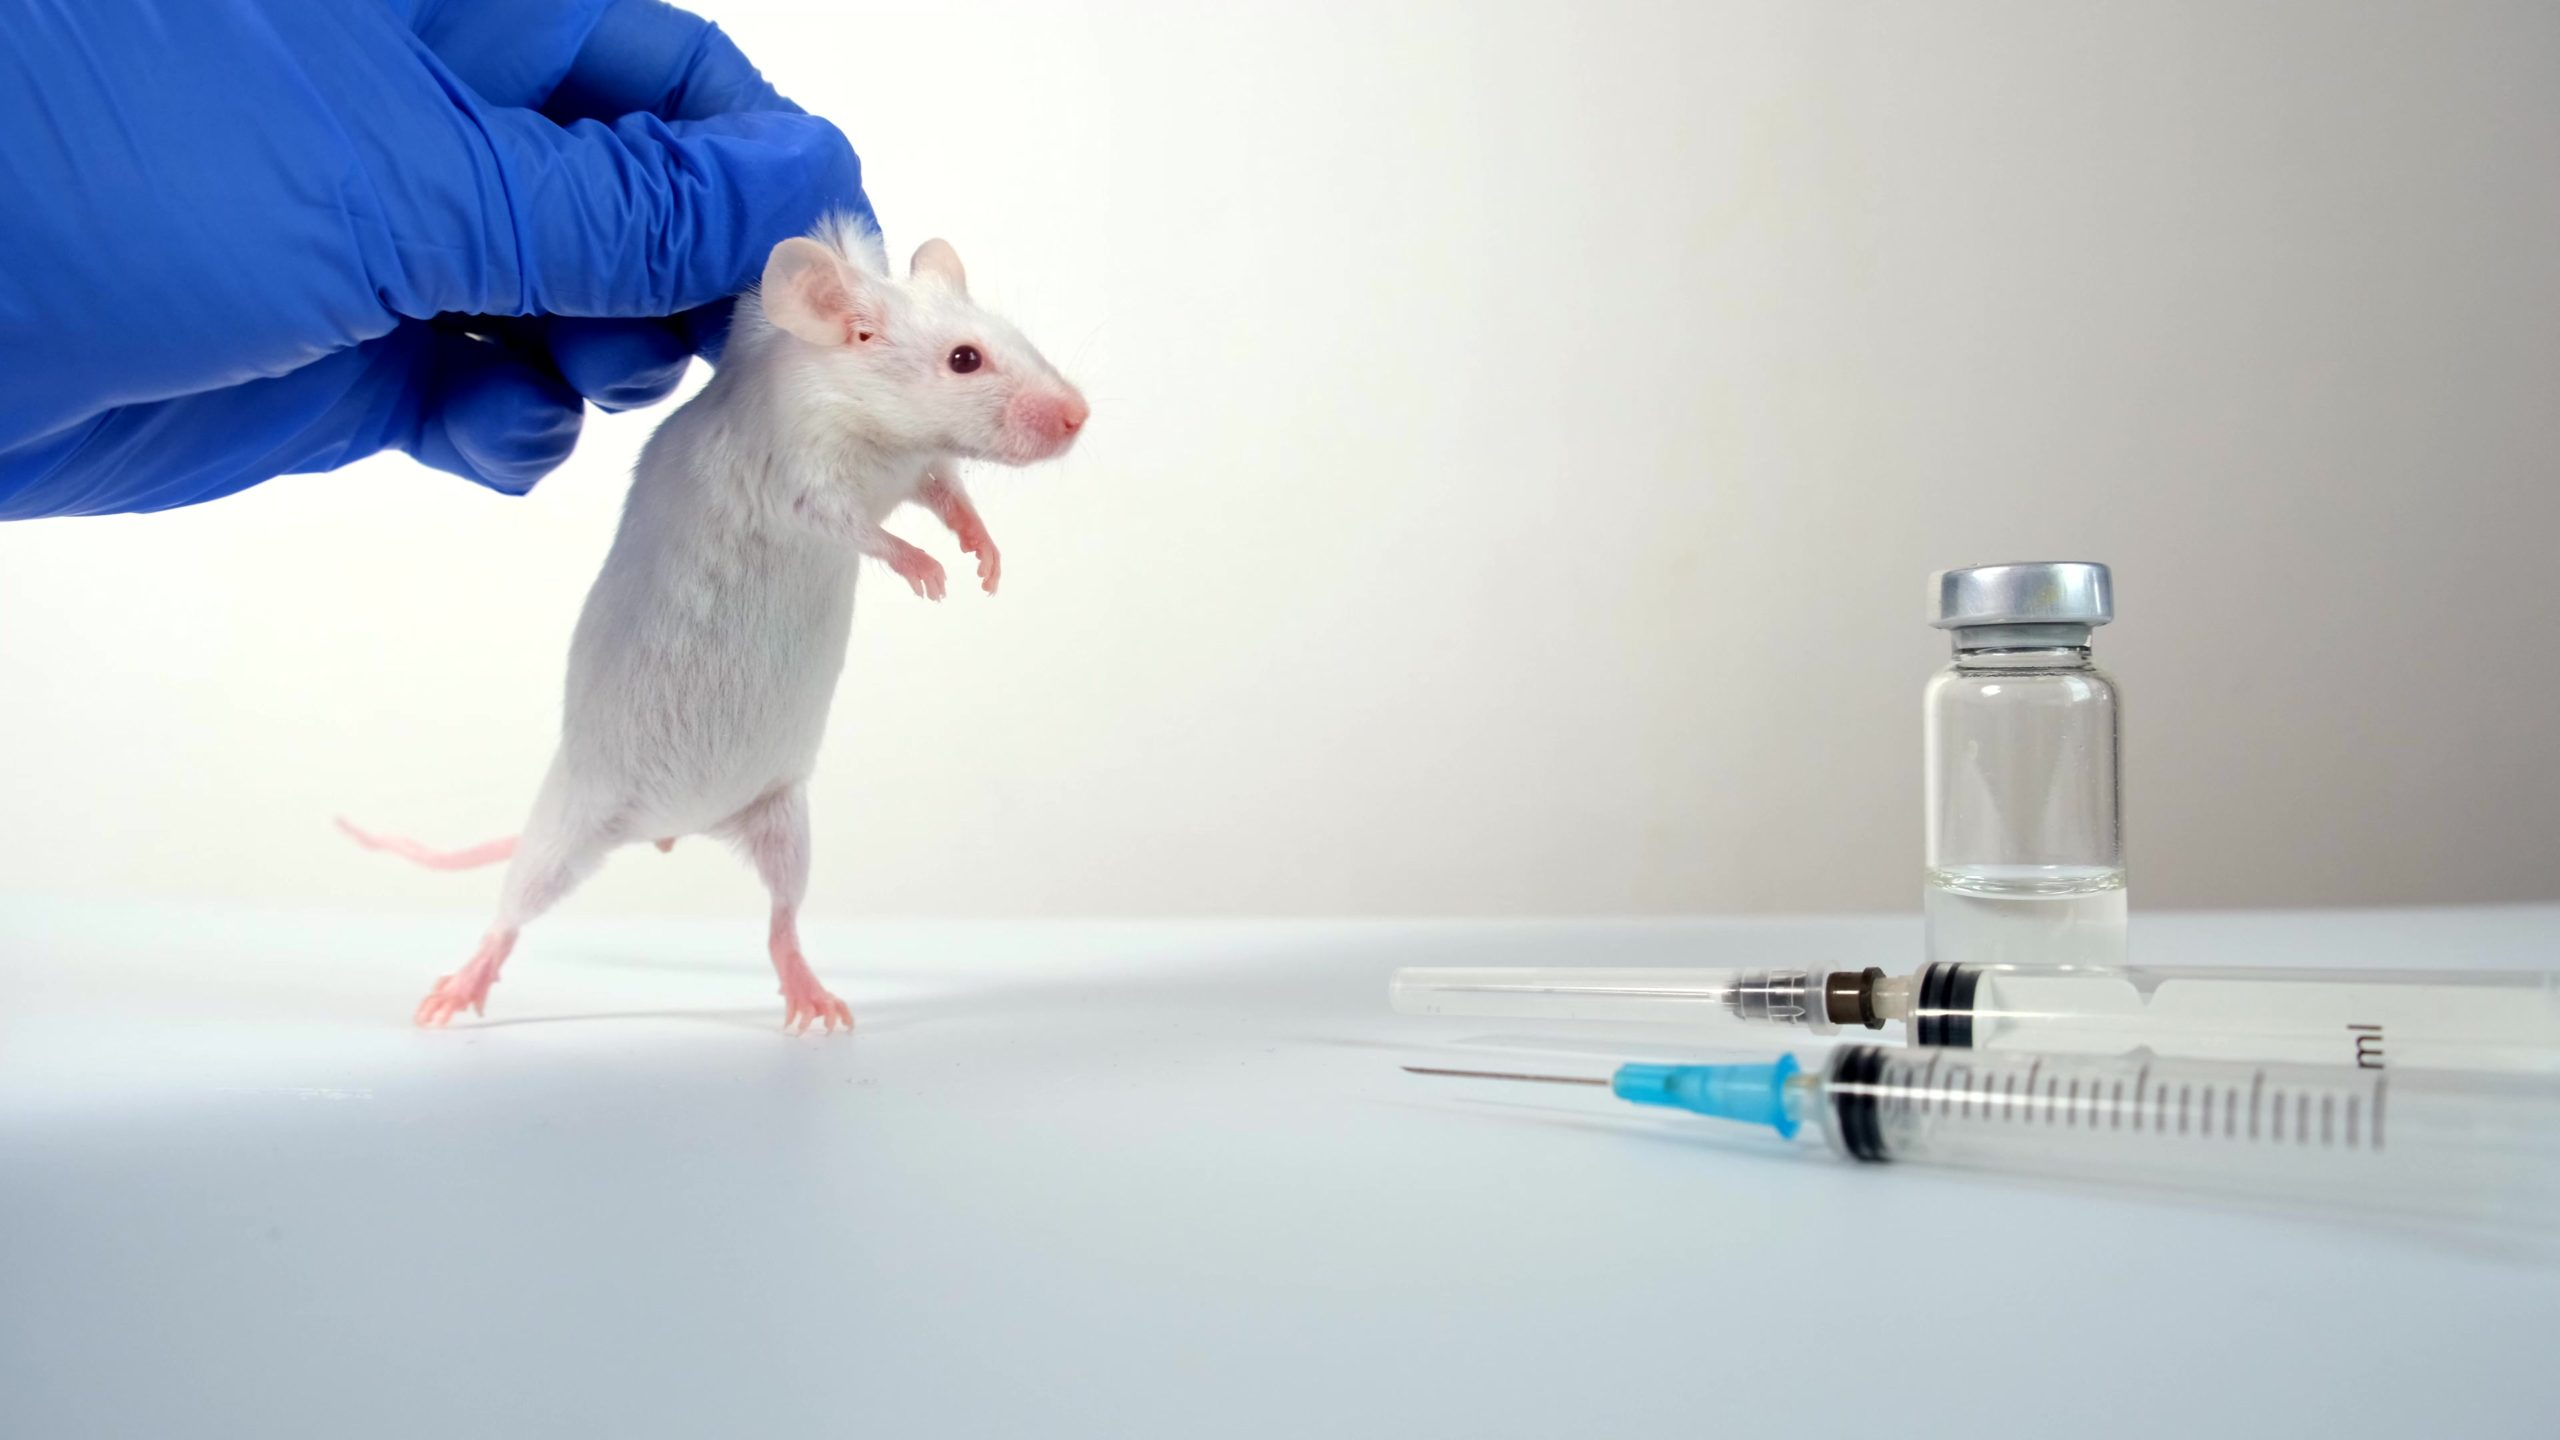 Cruel botox tests on mice continue despite animal-free tests have been available for 10years